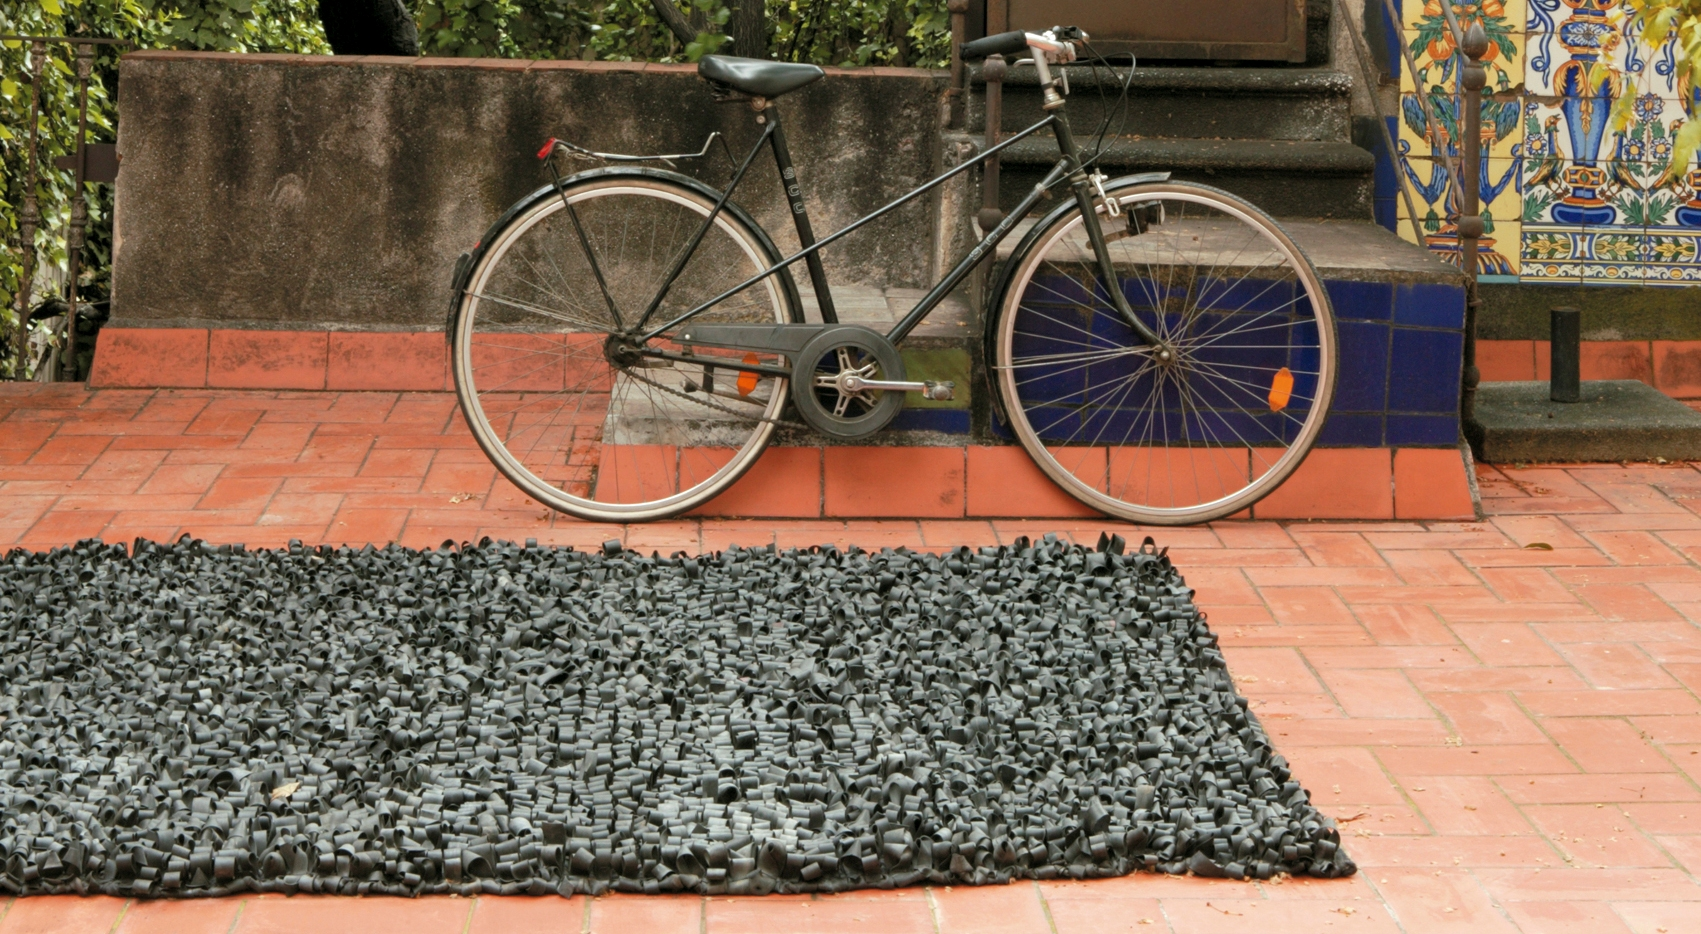 Bicycle rug designed by Ariadna Miquel and Emili Padrós